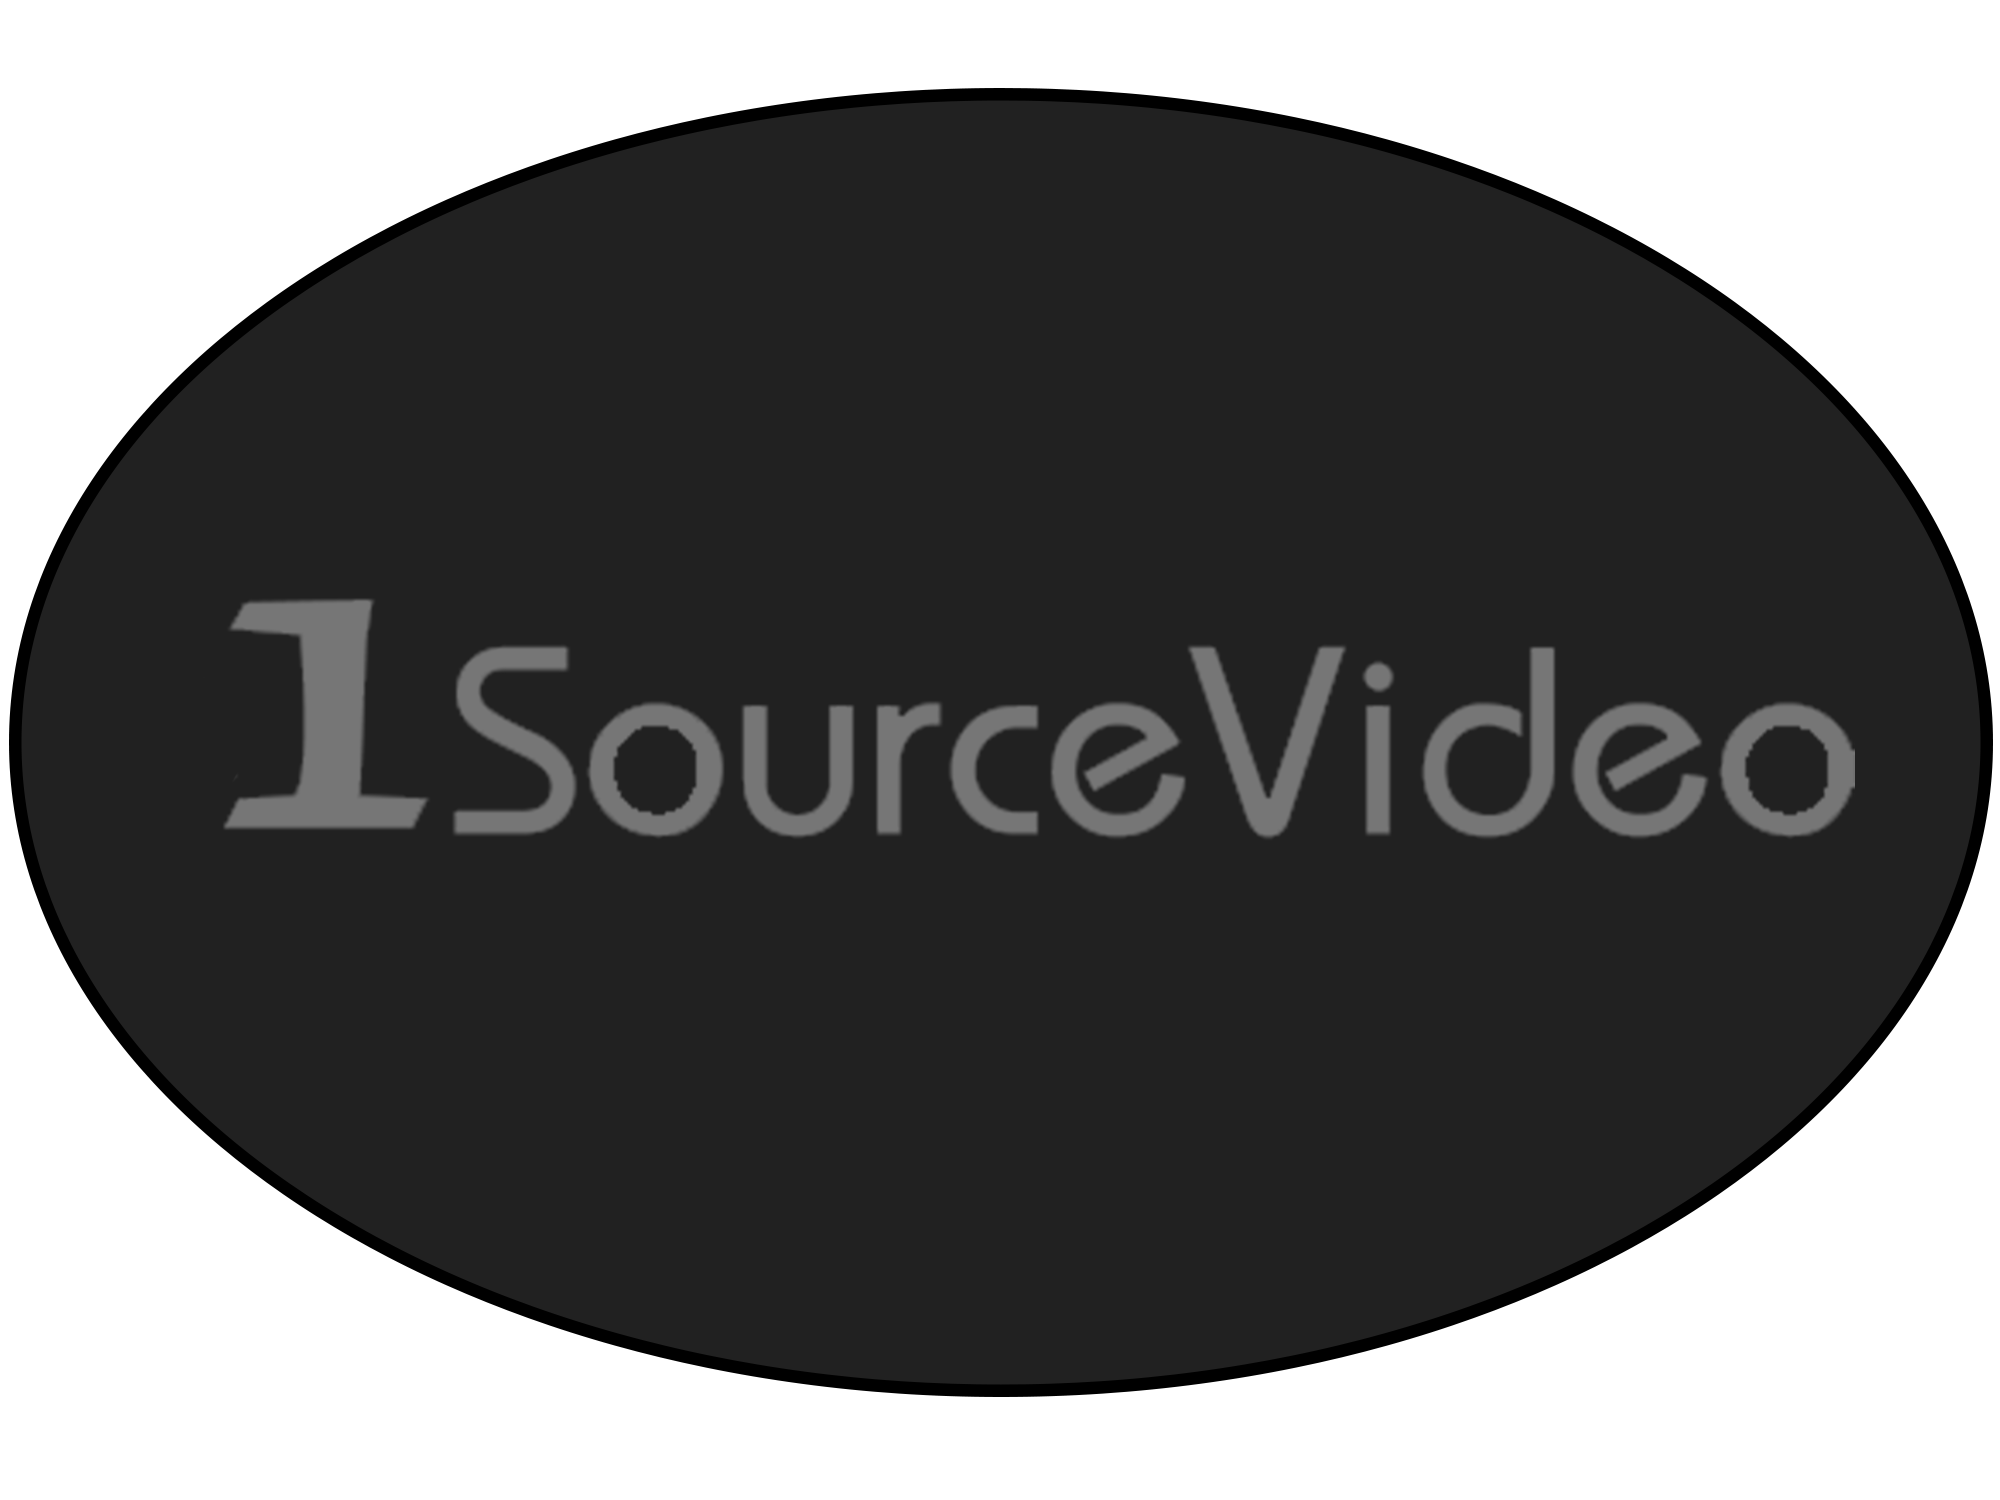 1 Source Video